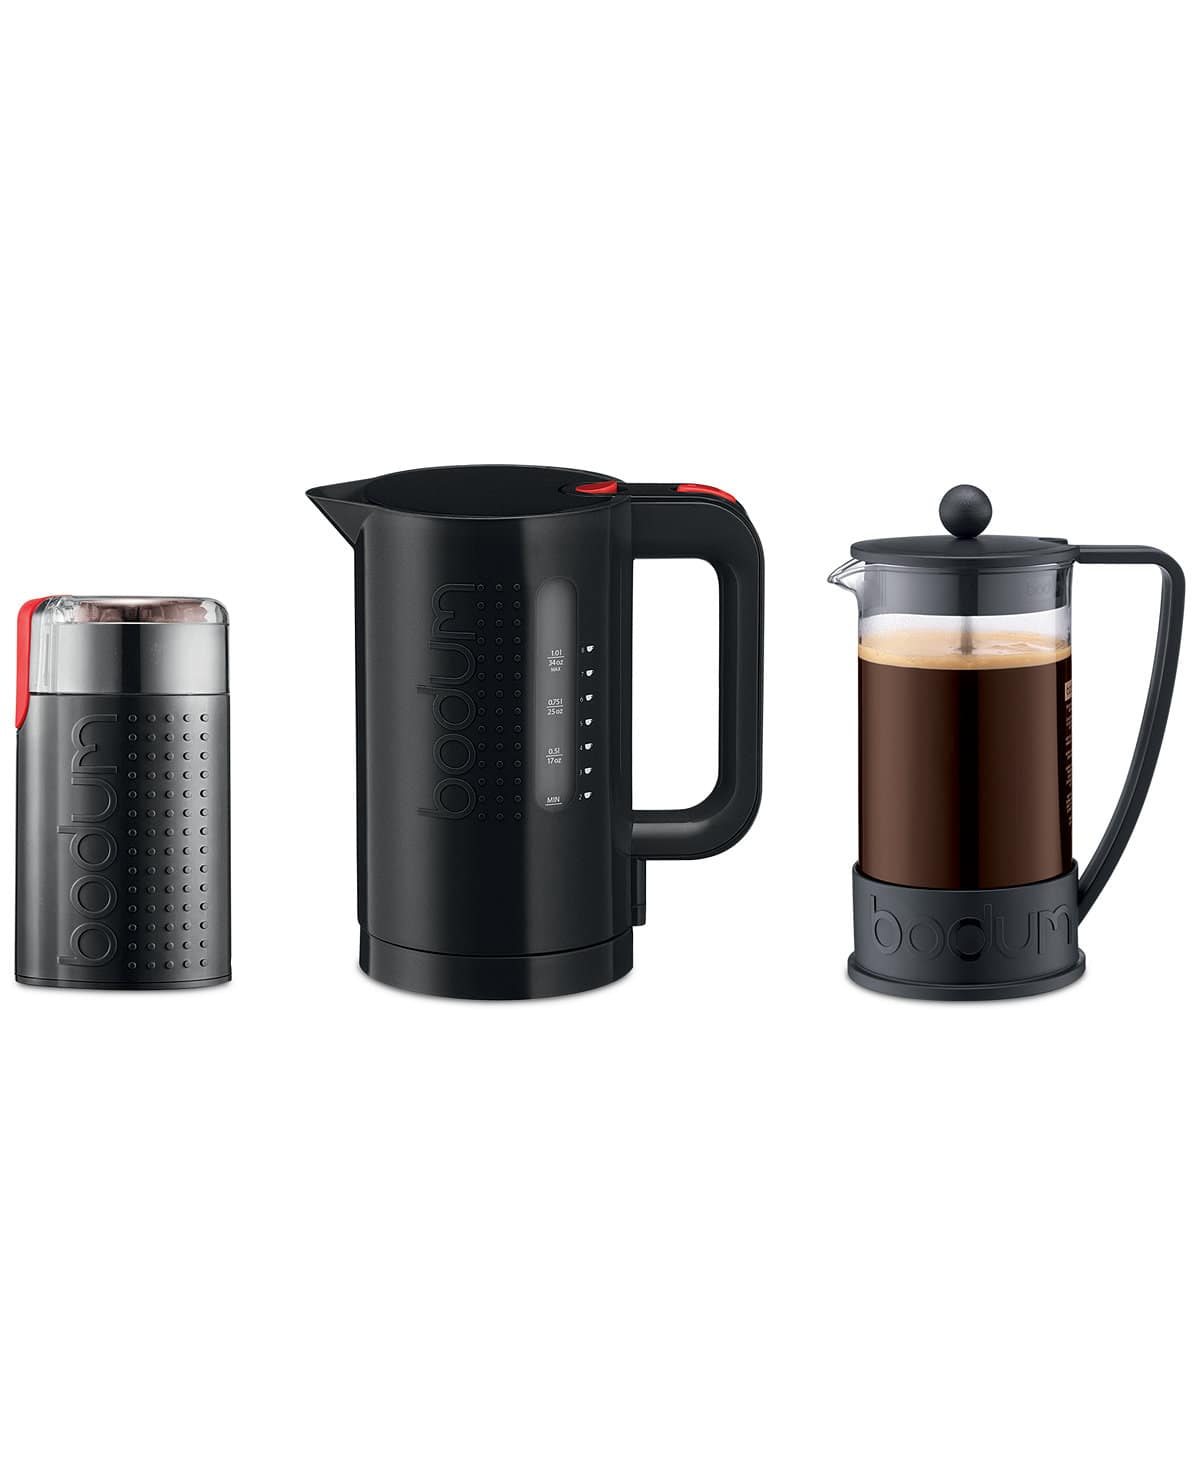 Macy's - Bodum 3-Pc. Grind, Boil, Brew Value Set $39.93 (reg $120) Free Ship (set includes French press coffee maker, electric Bistro grinder and electric water kettle)